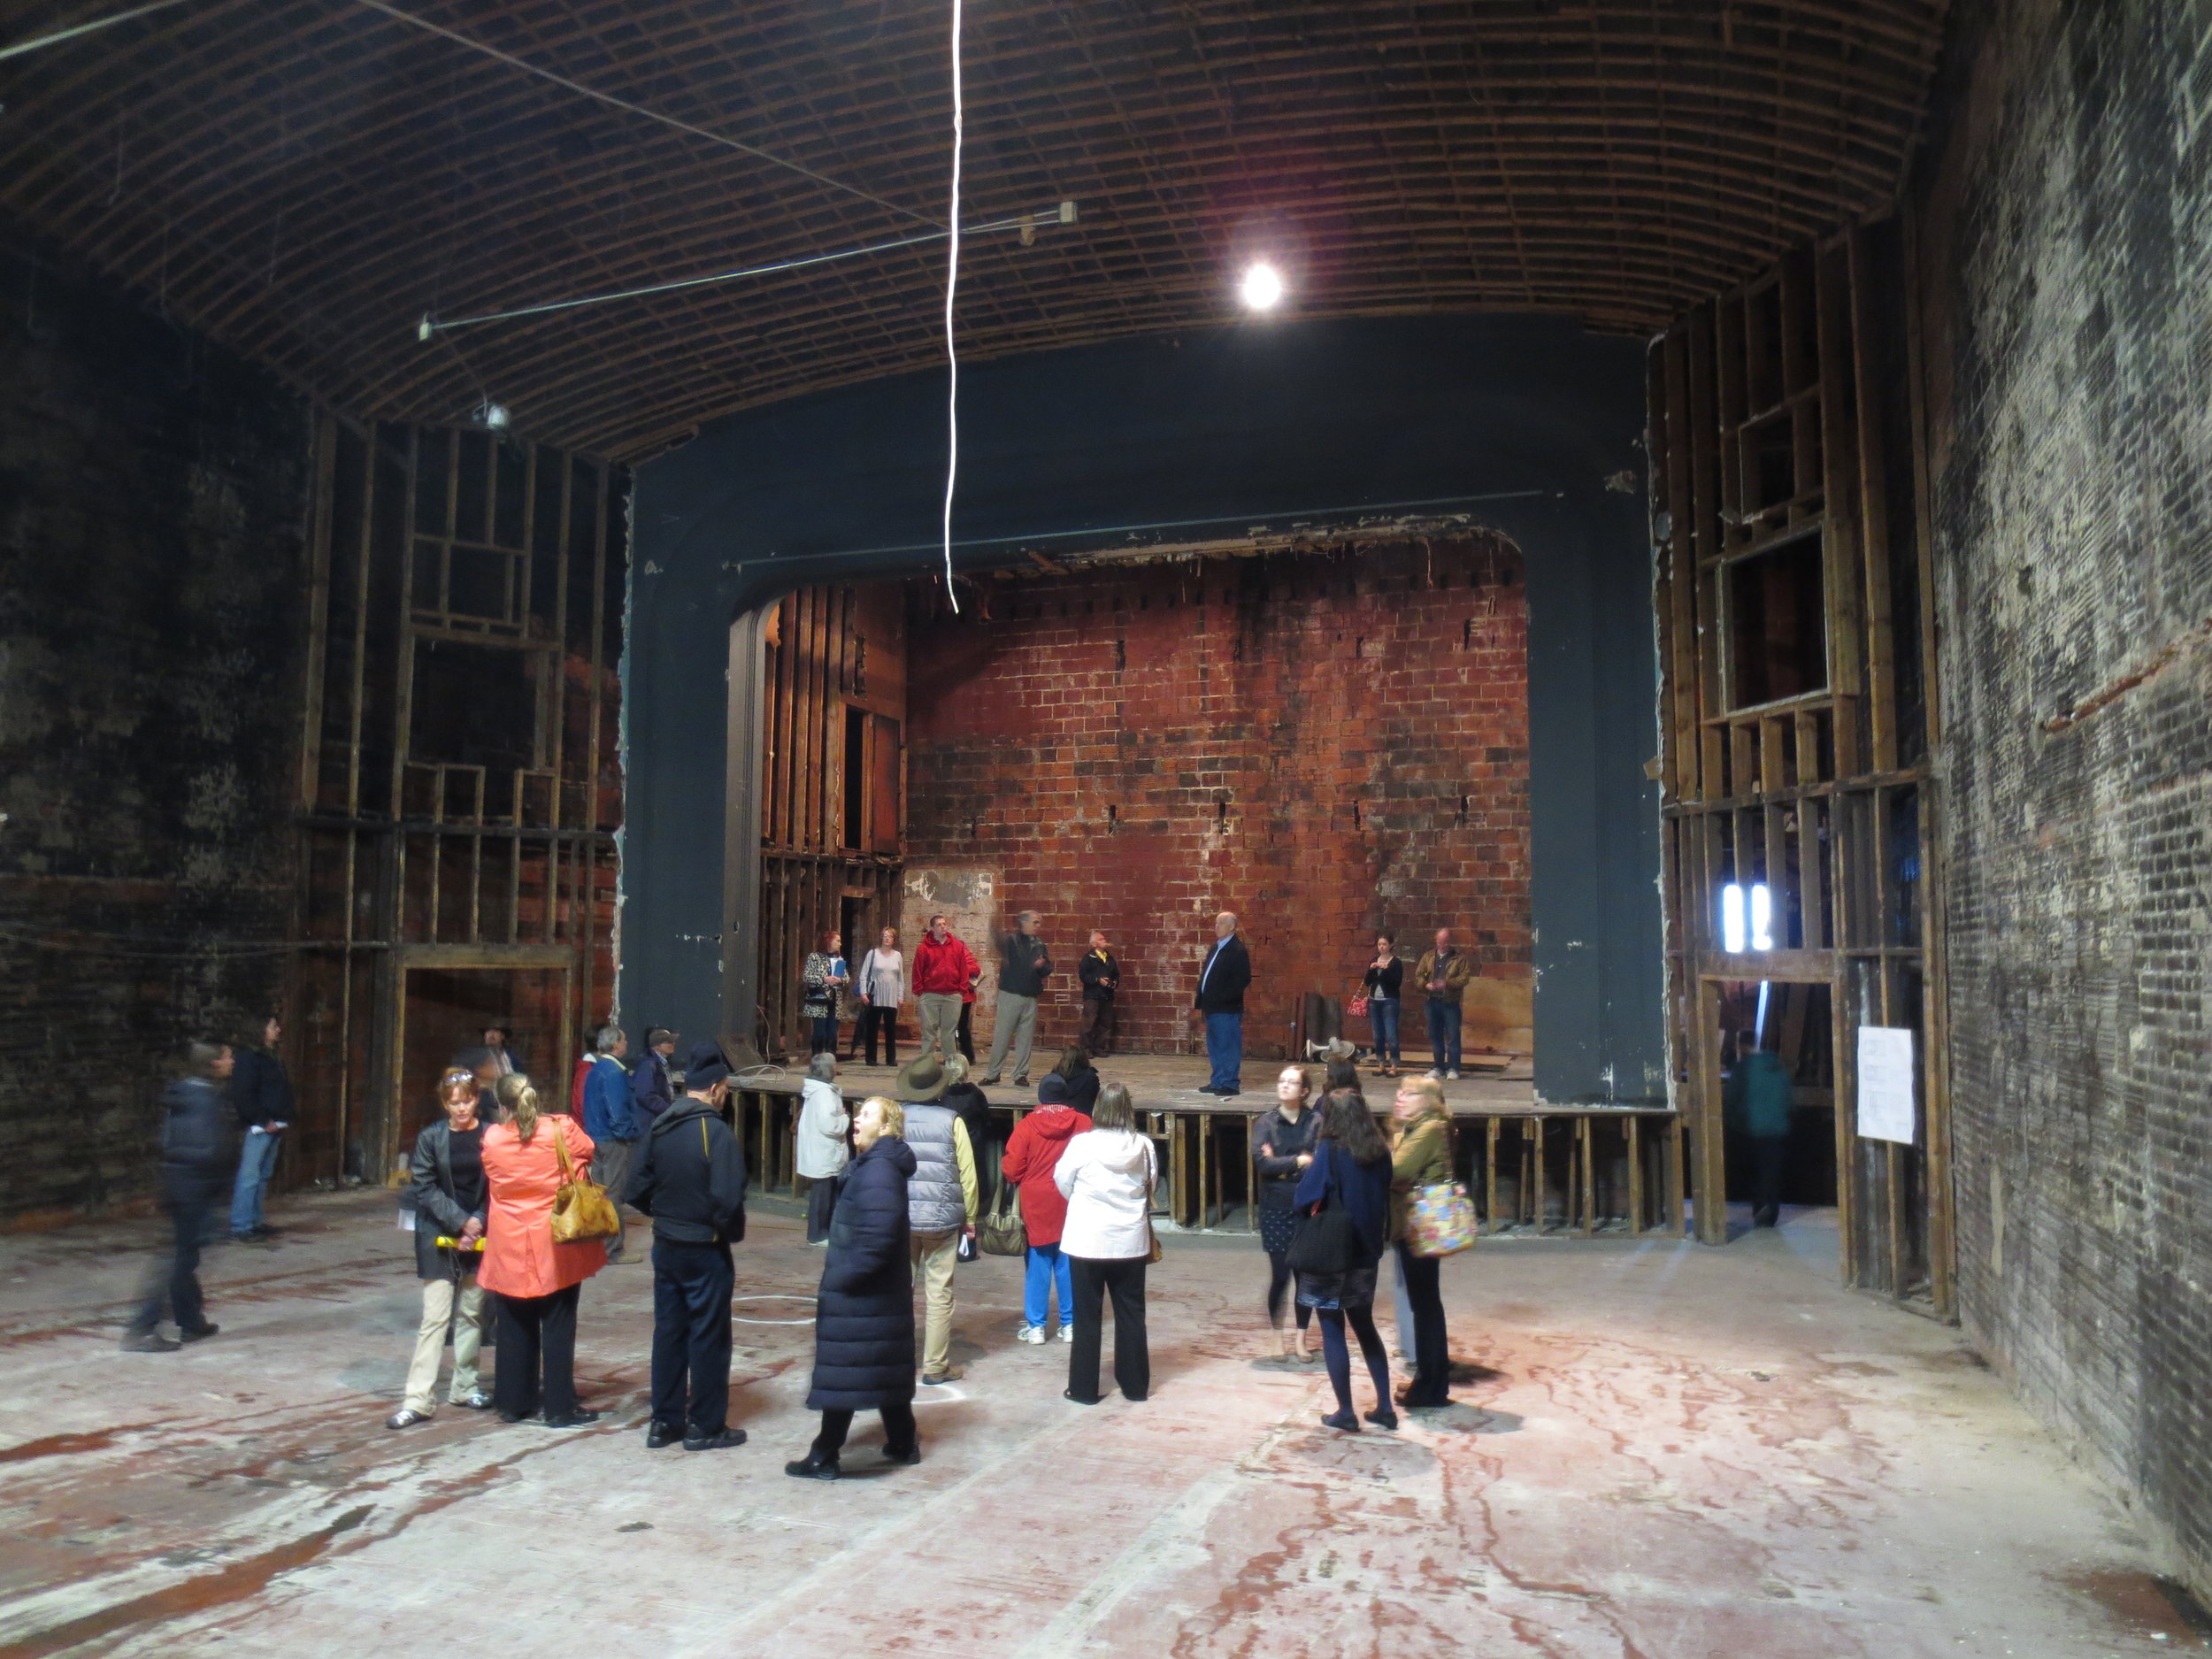 The gutted auditorium and stage of the Appalachian Theatre as it appeared in May 2013. Image courtesy of Eric Plaag.